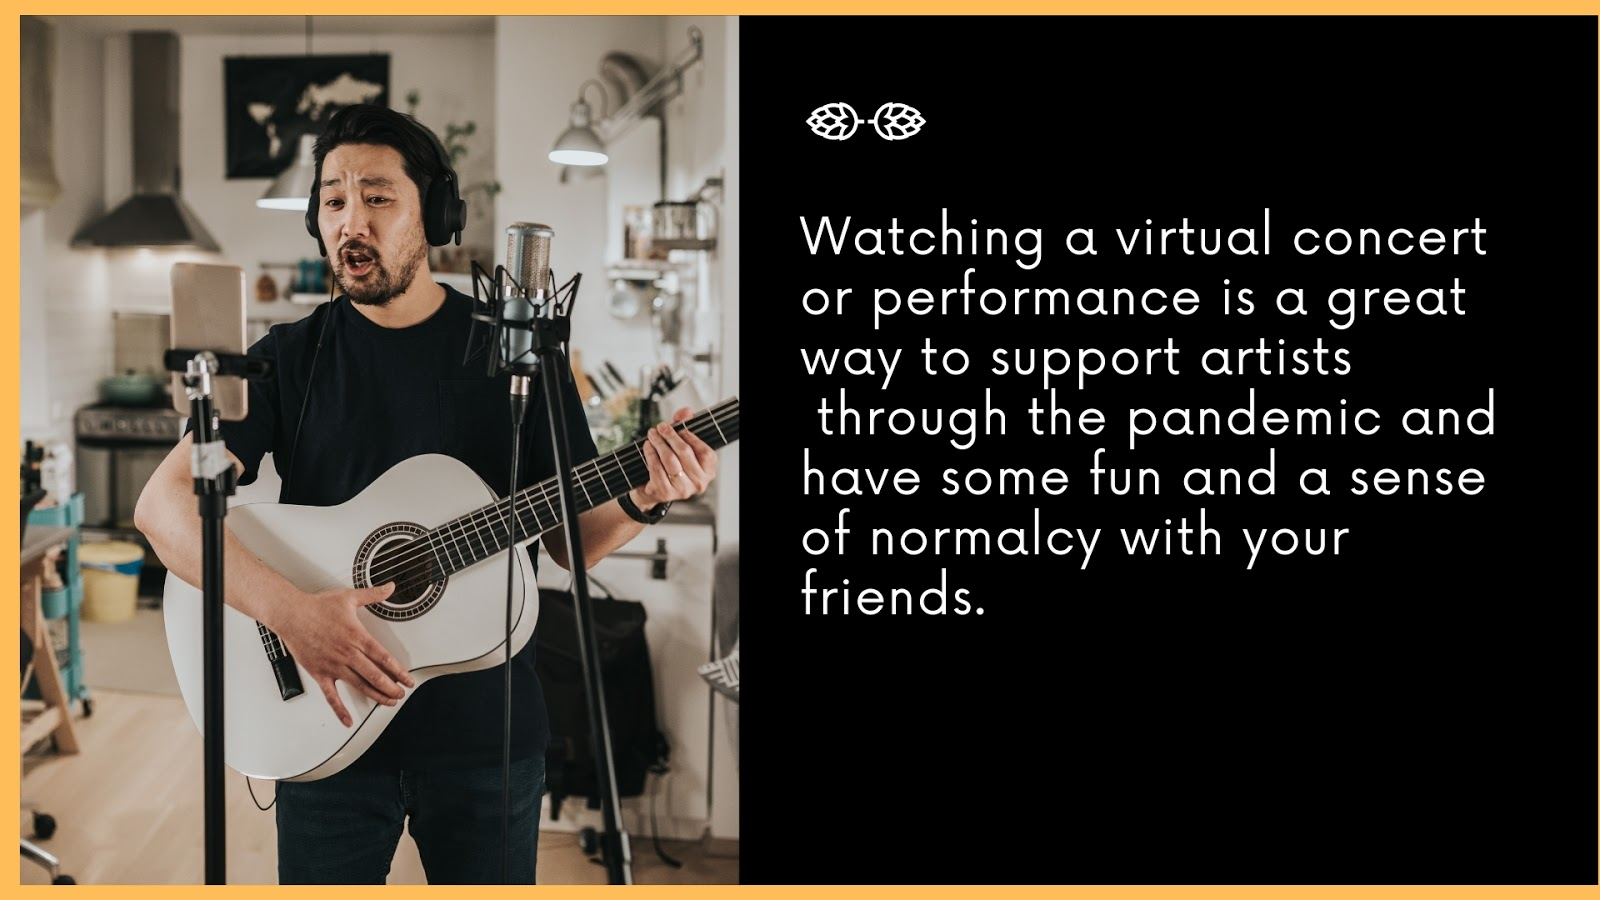 Watching a virtual concert or performance is a great way to support artists